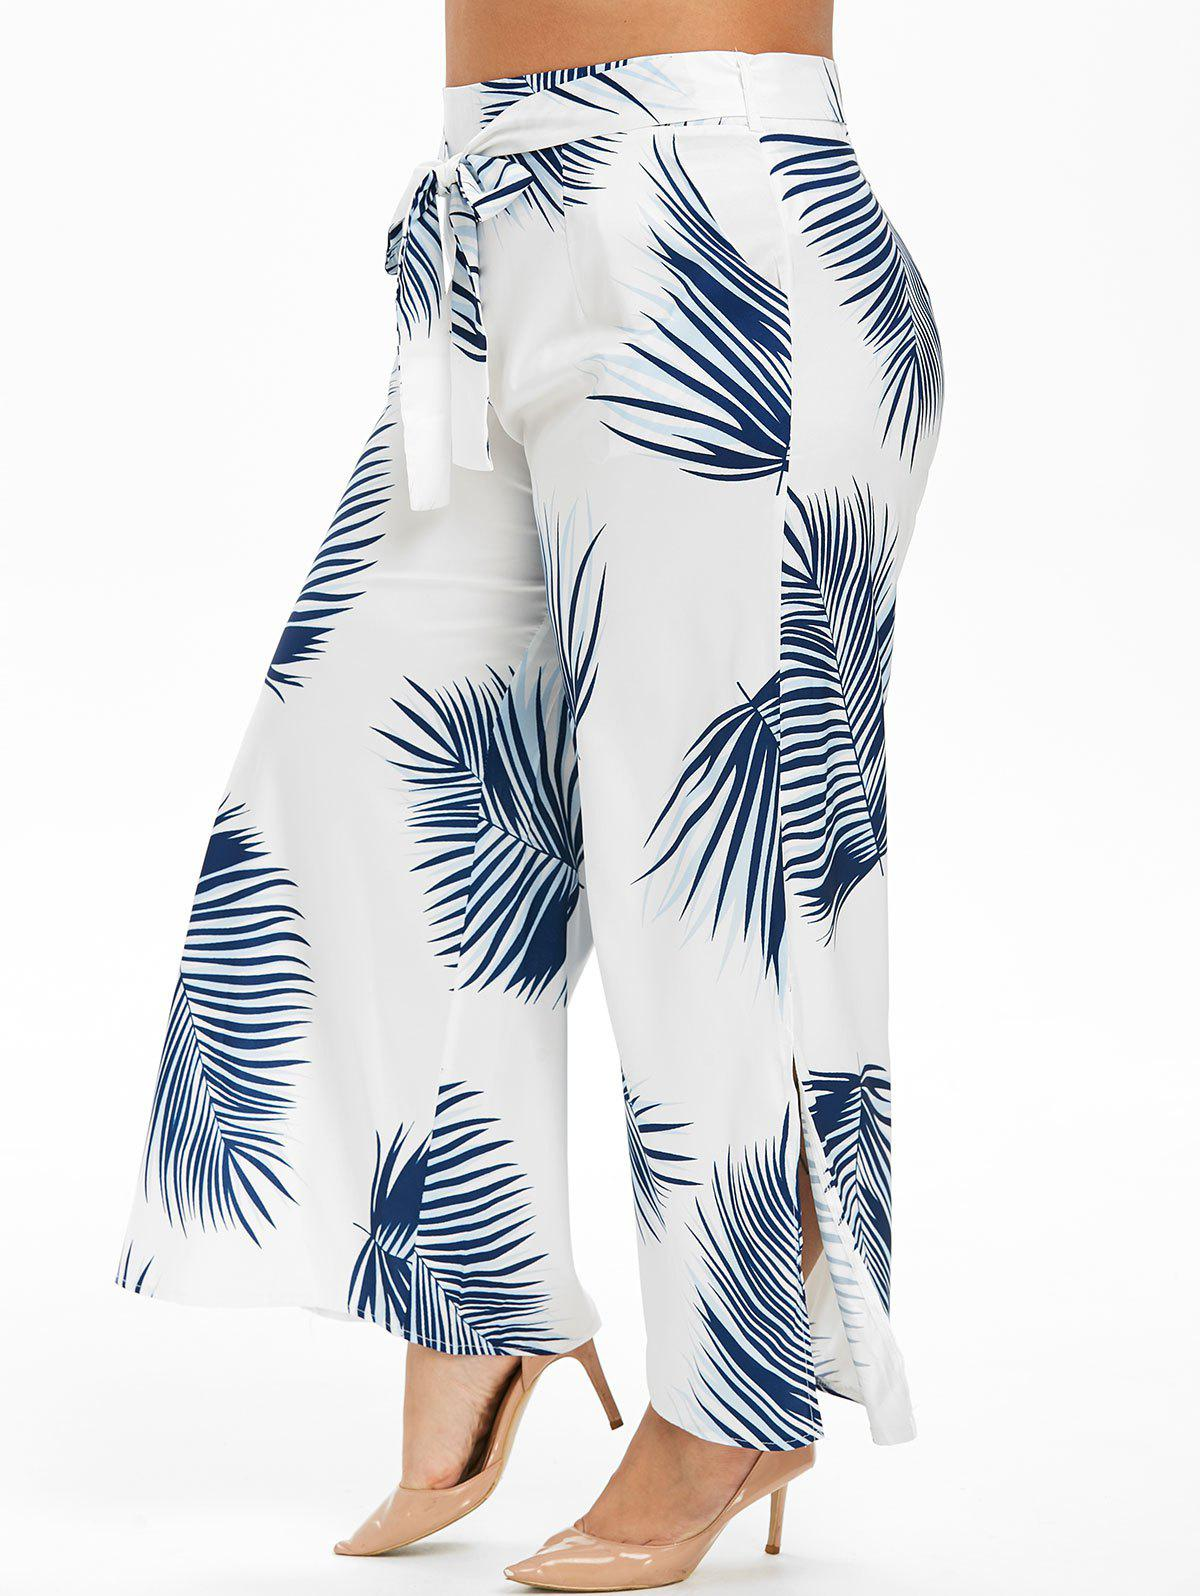 Leaves Print Slit Belted Plus Size Wide Leg Pants - WHITE 4X